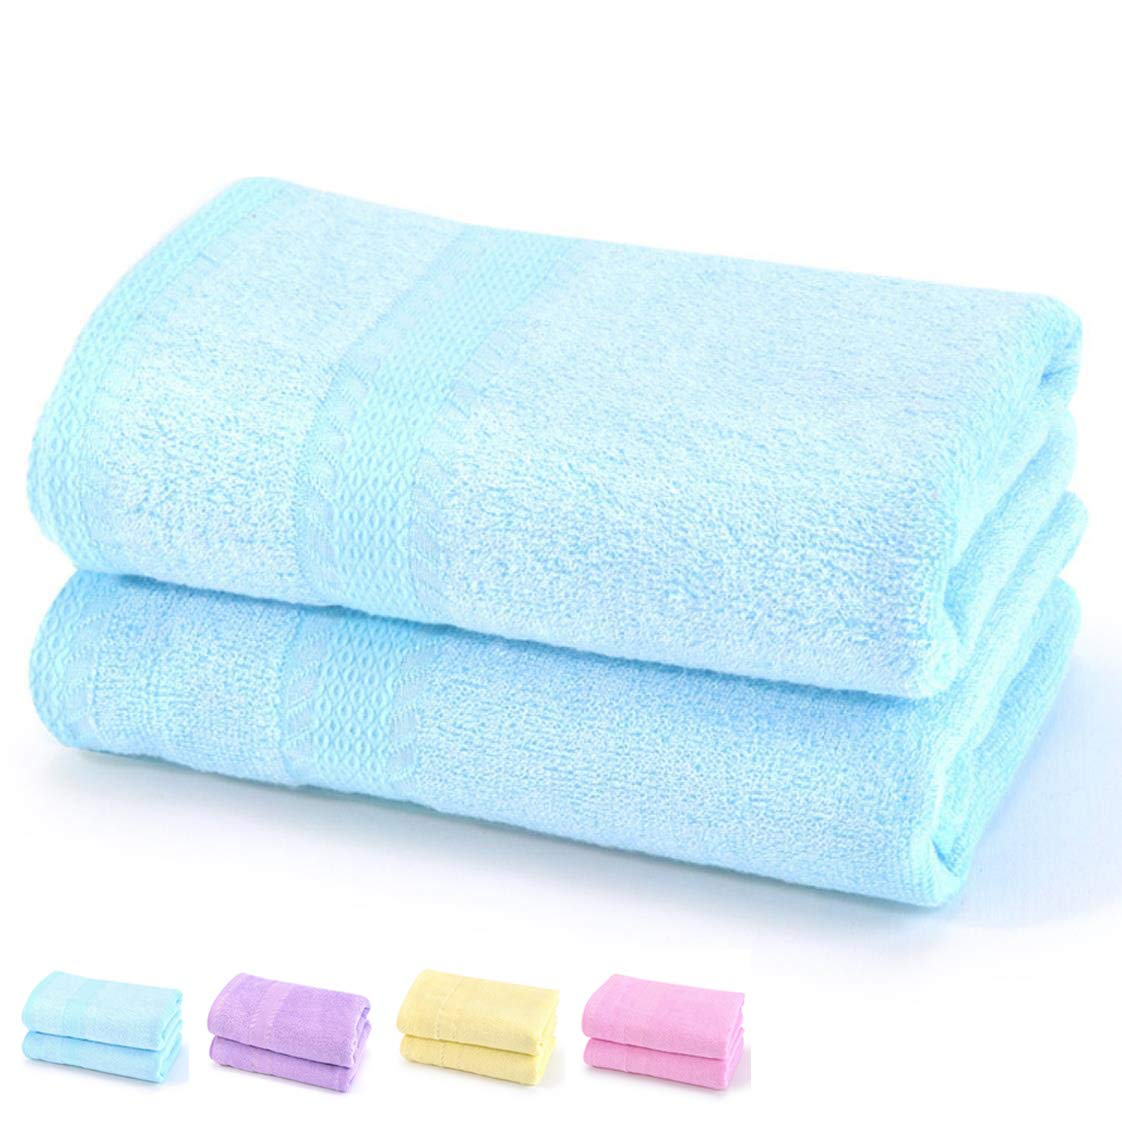 """TeenFighter Bamboo Fiber 360g Quality Bath Towel(2 Pack, 28"""" x 55"""") for Girls, Soft, Super Absorbent and Fast Drying Towels, Multipurpose Use for Sports, Travel, Fitness, Yoga (Blue, Bath Towel)"""